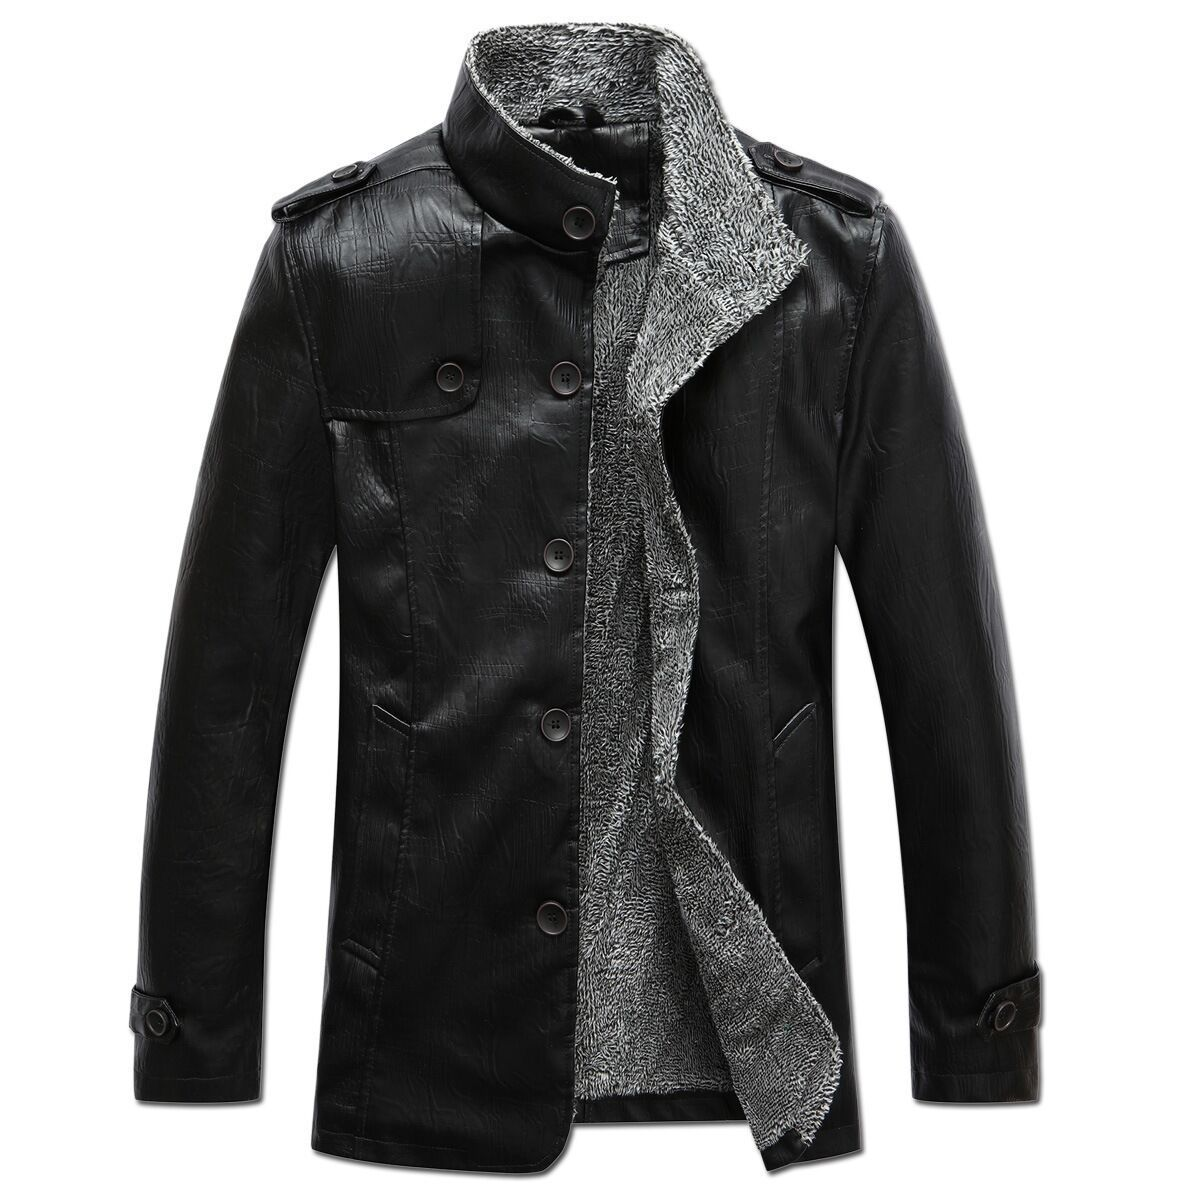 Men's stand collar thick mid-length leather jacket